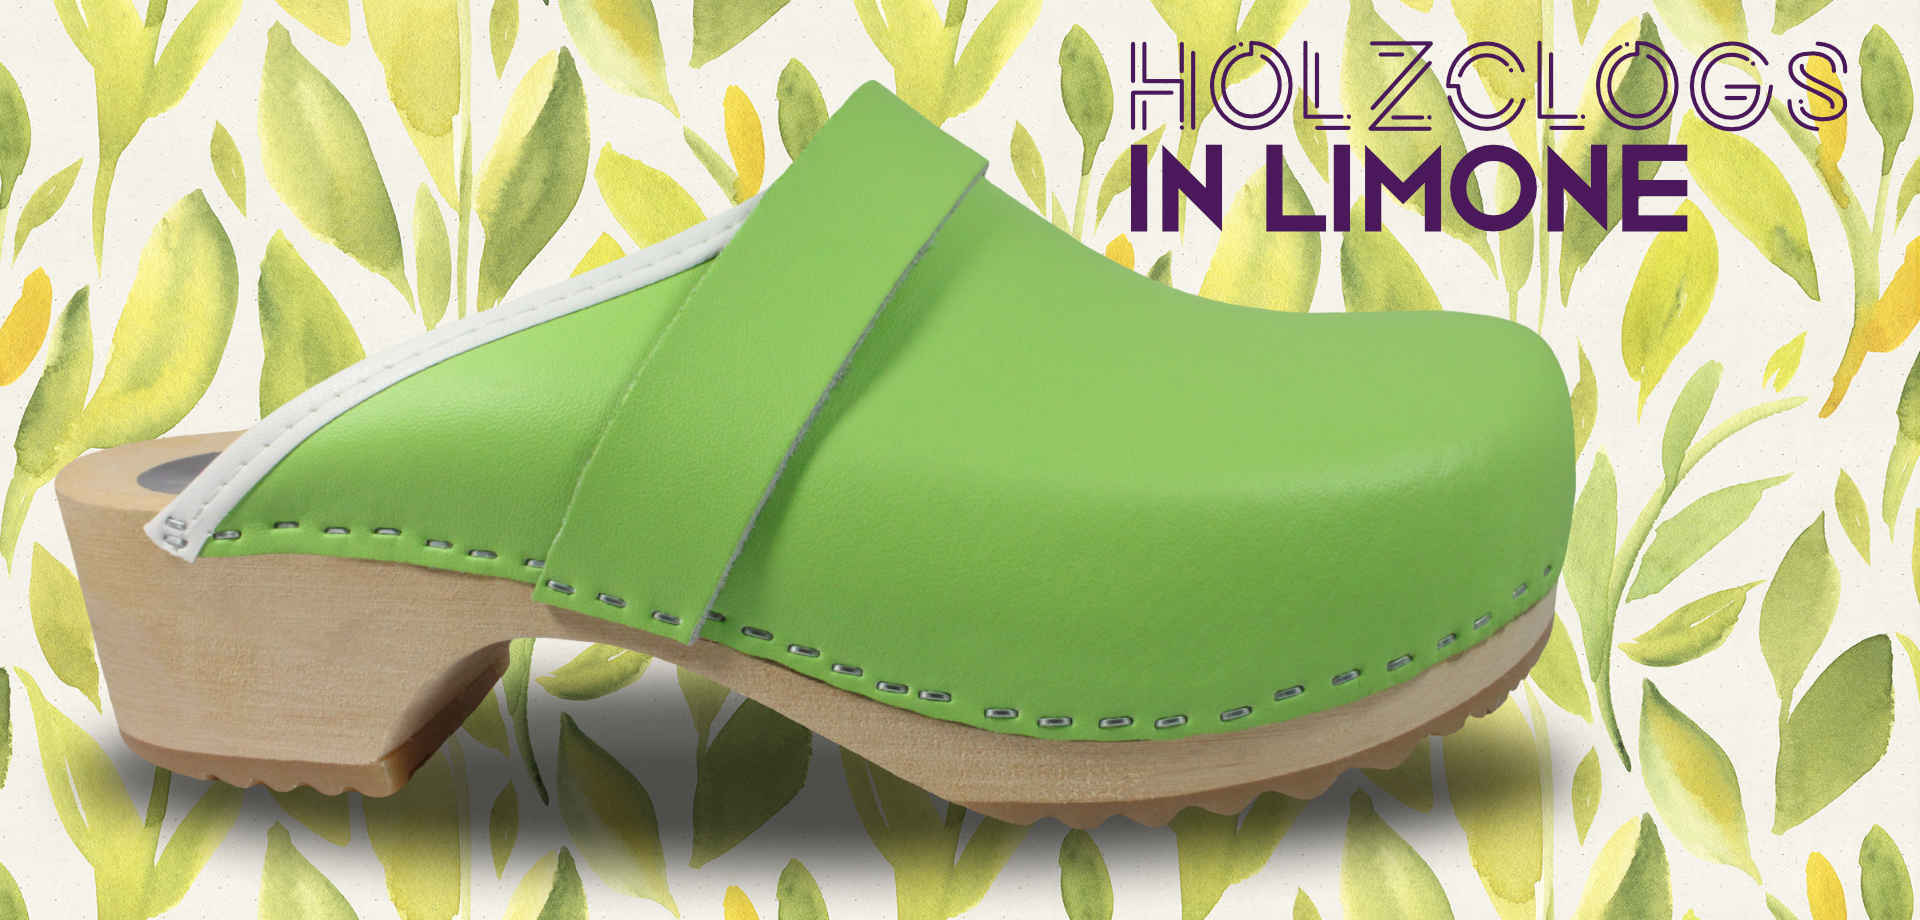 Holzclogs in Limone, offen